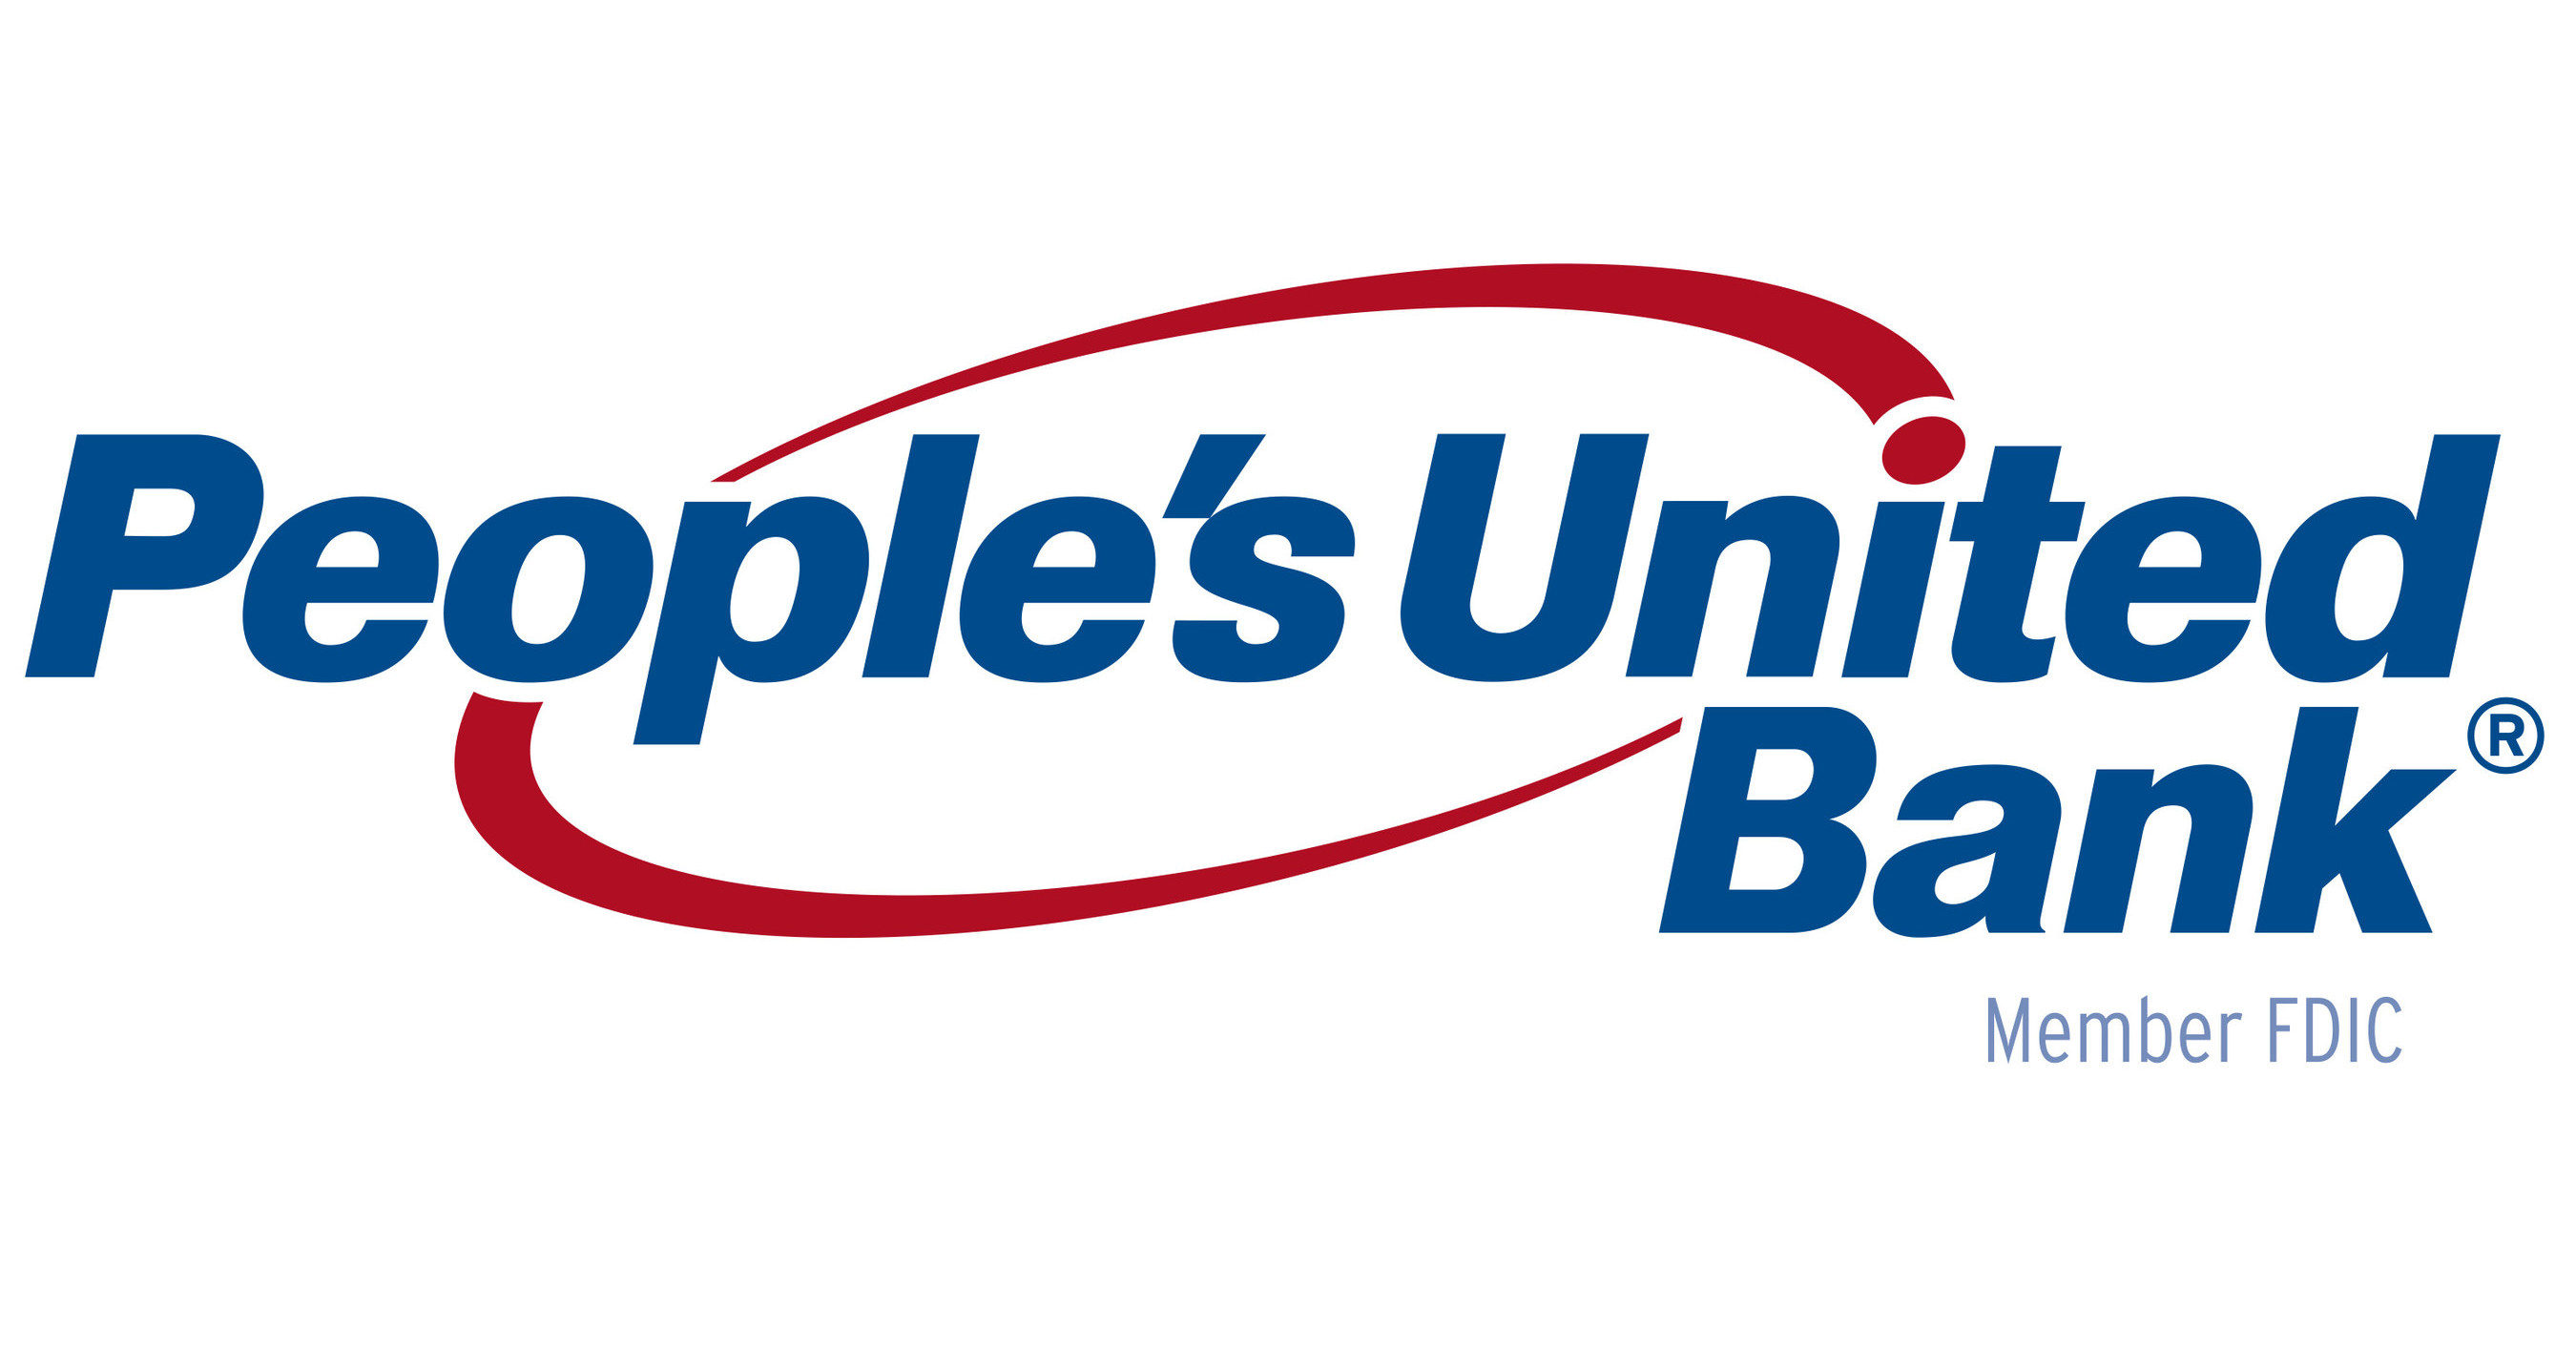 bank united peoples app banking mobile